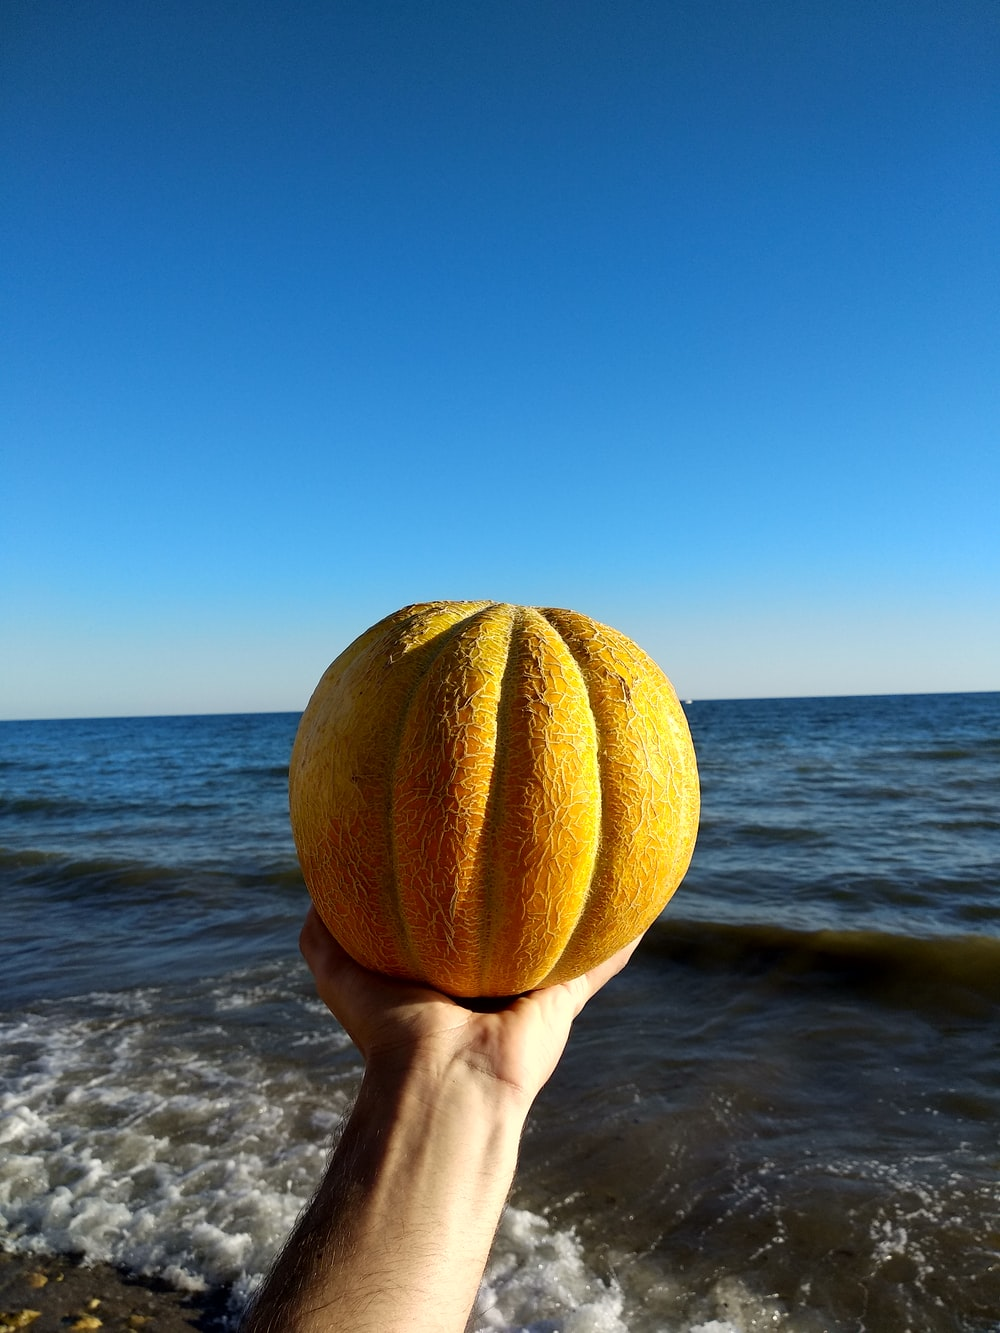 person holding yellow ball near body of water during daytime